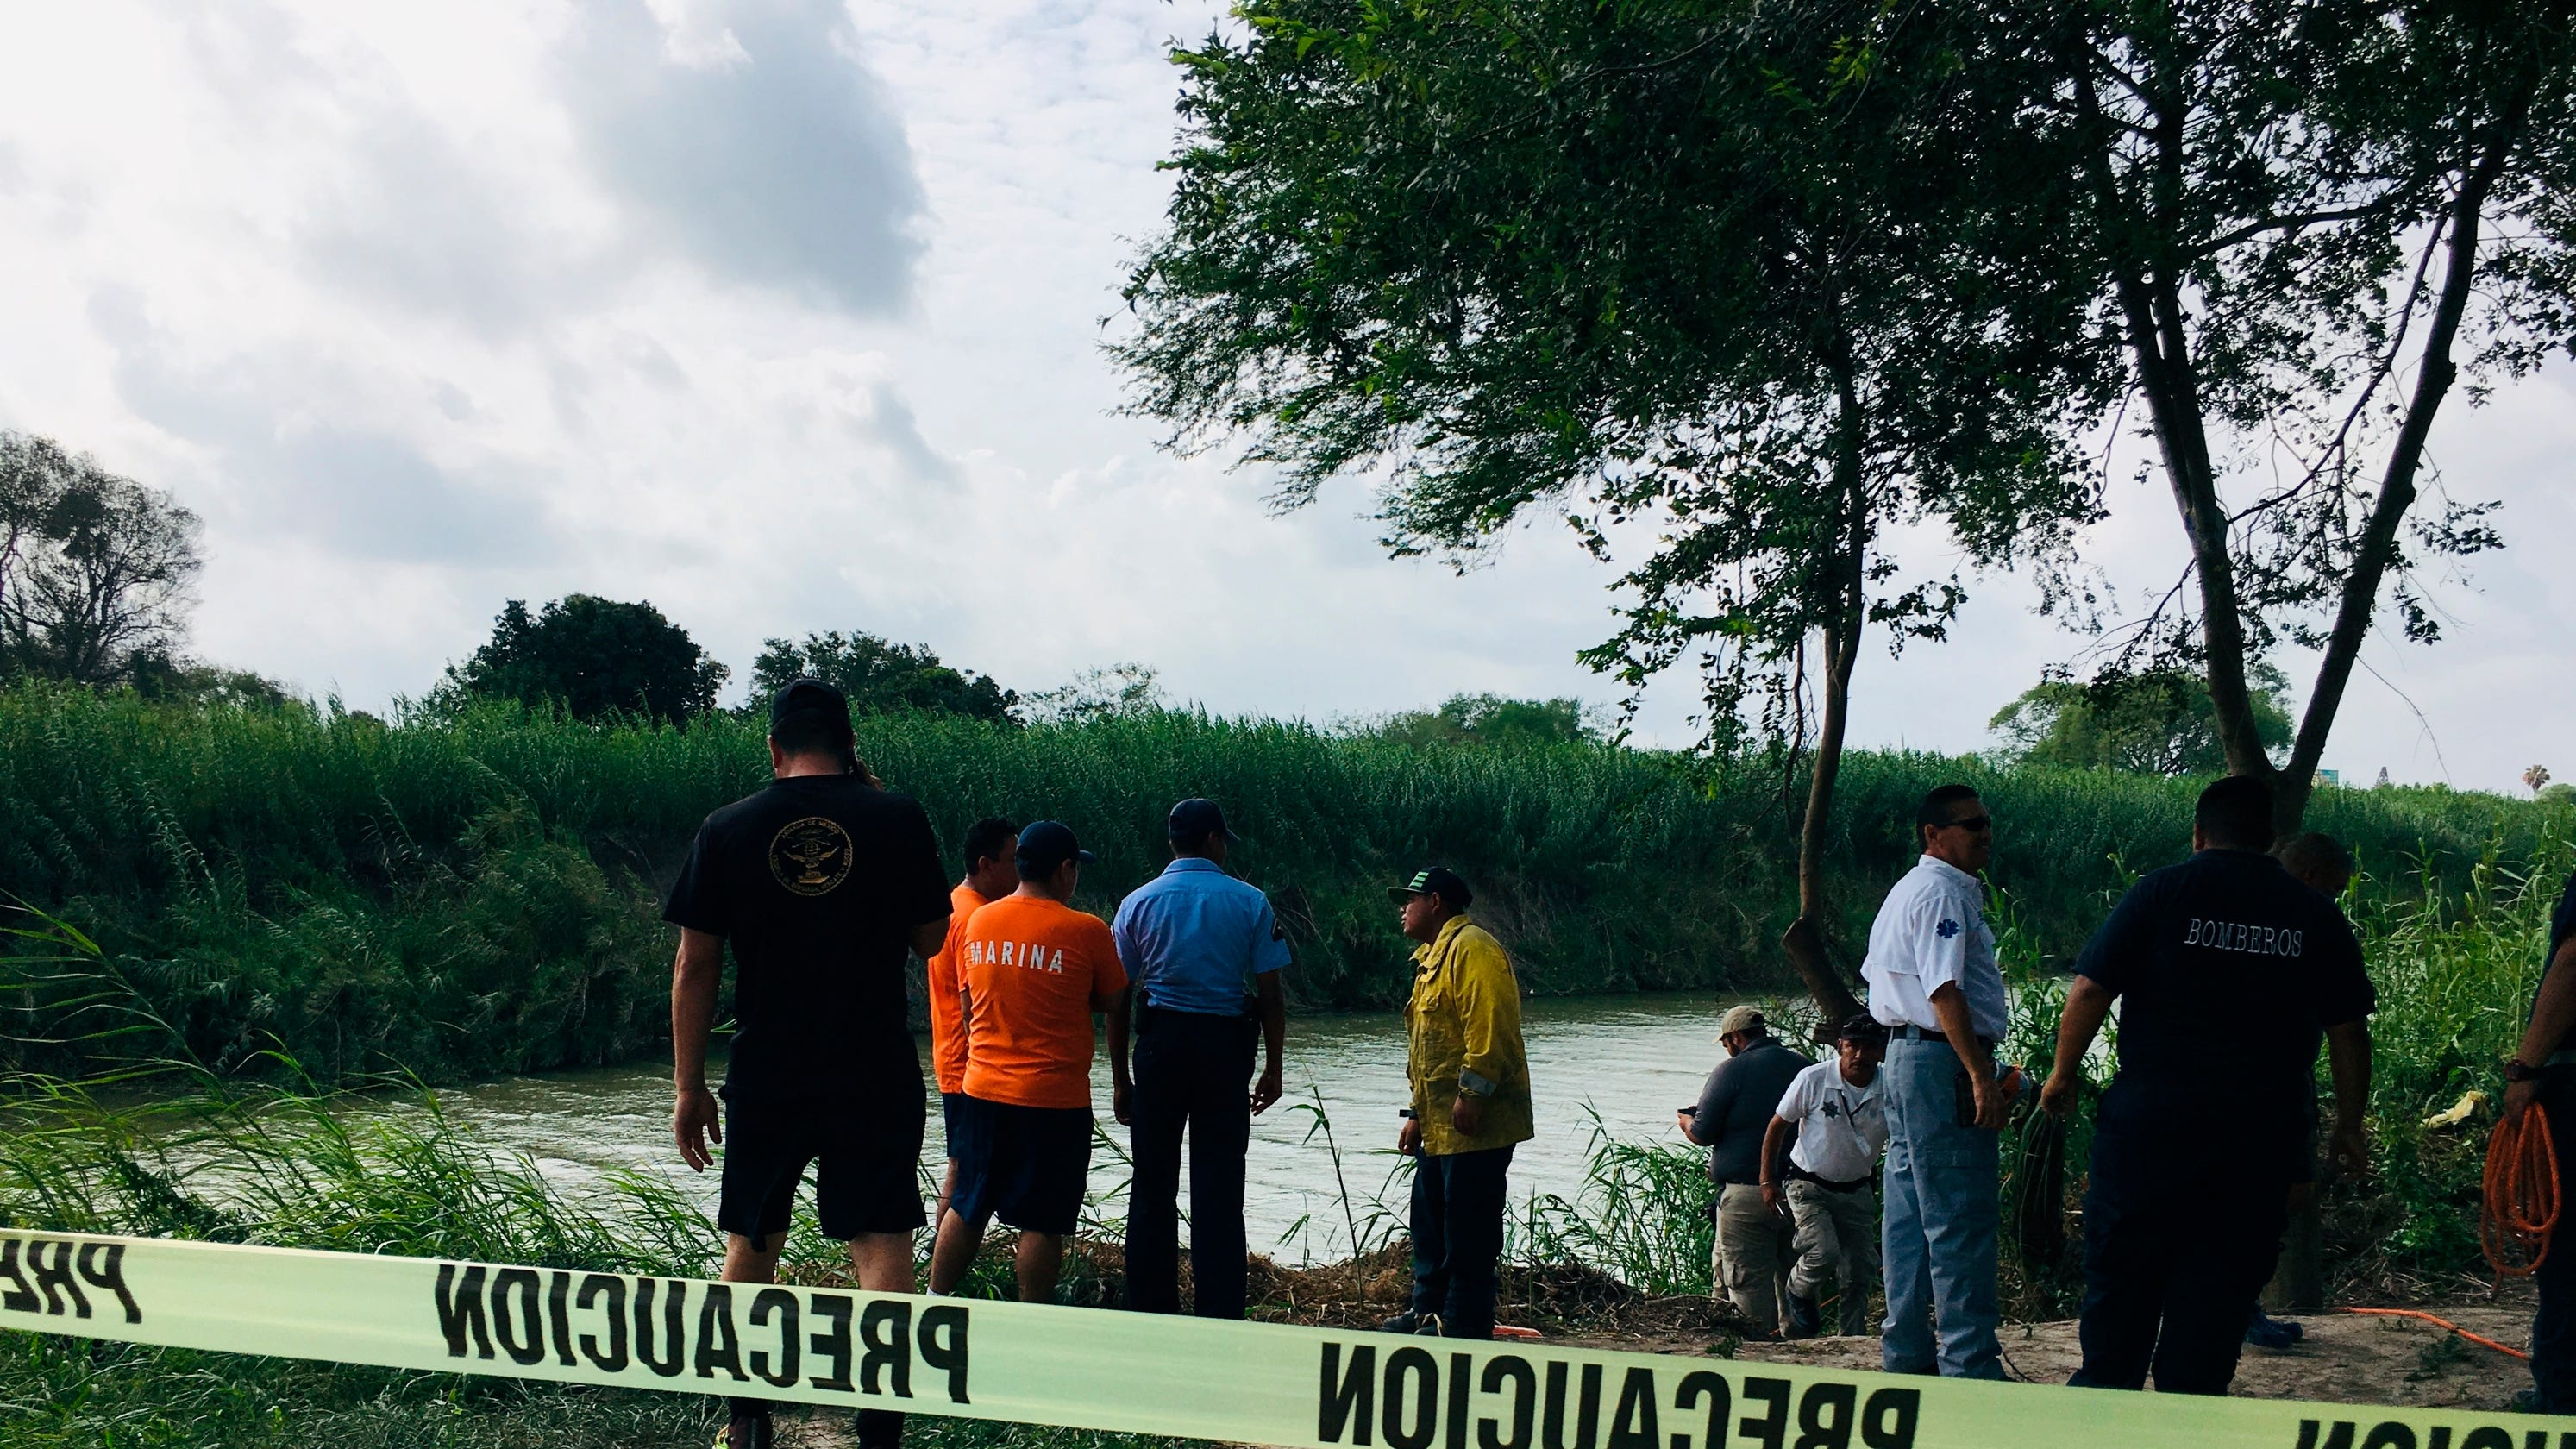 Graphic photo of drowned father and daughter stirs volatile immigration debate